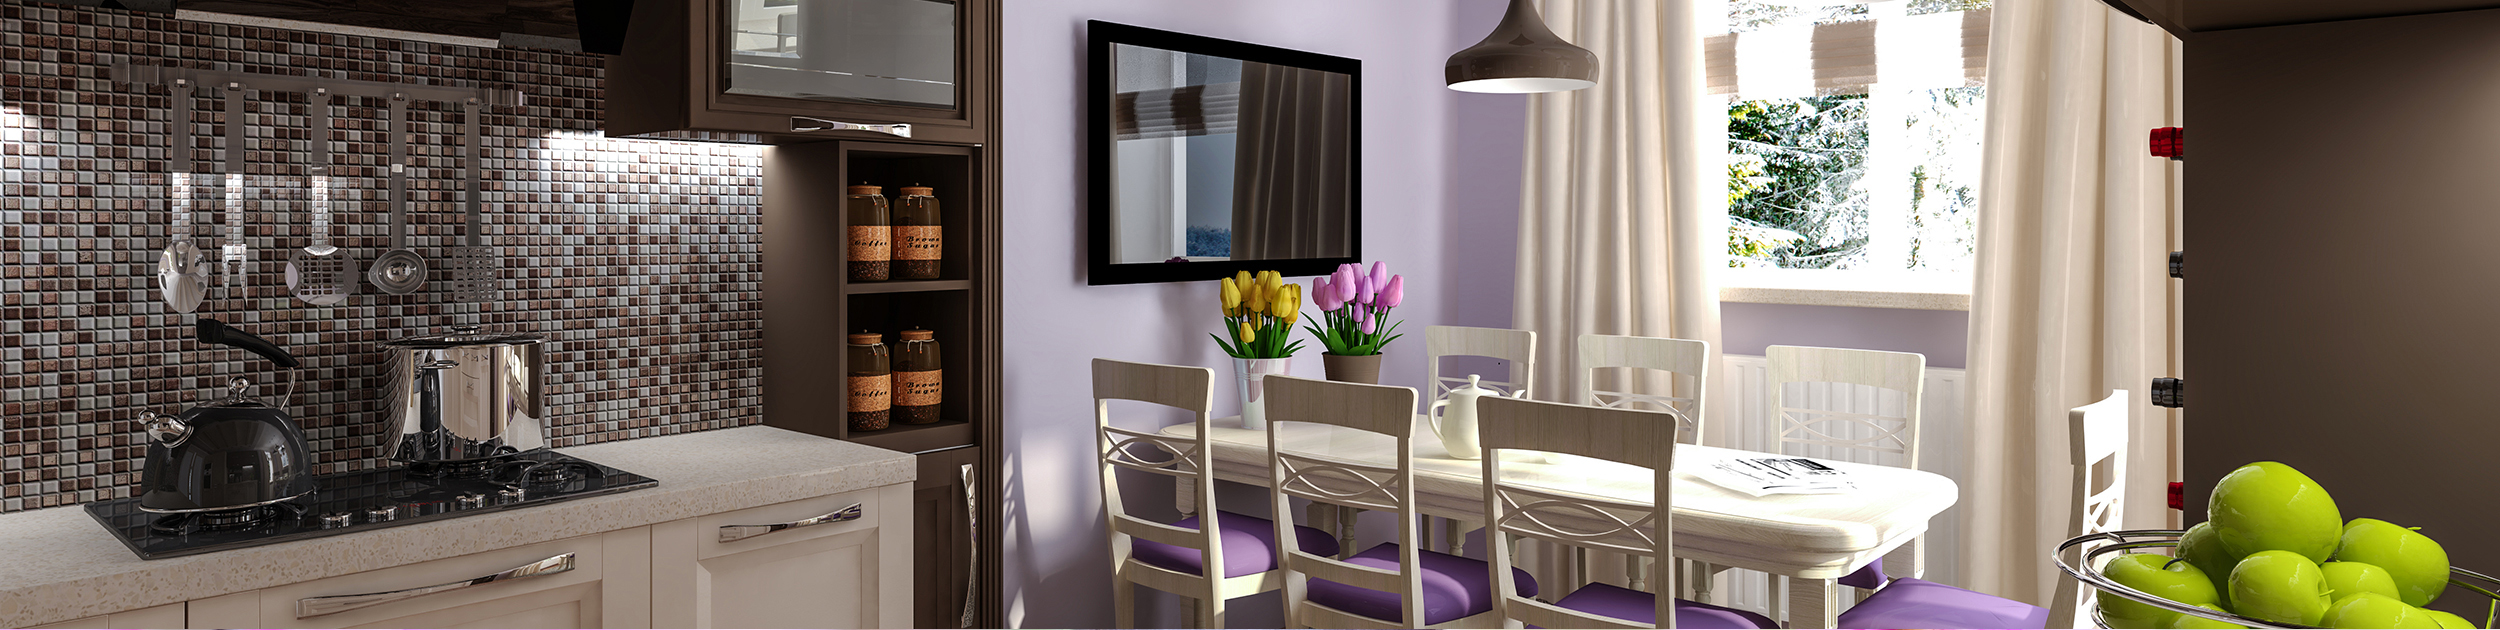 pretty kitchen with purple wall and tulips on table